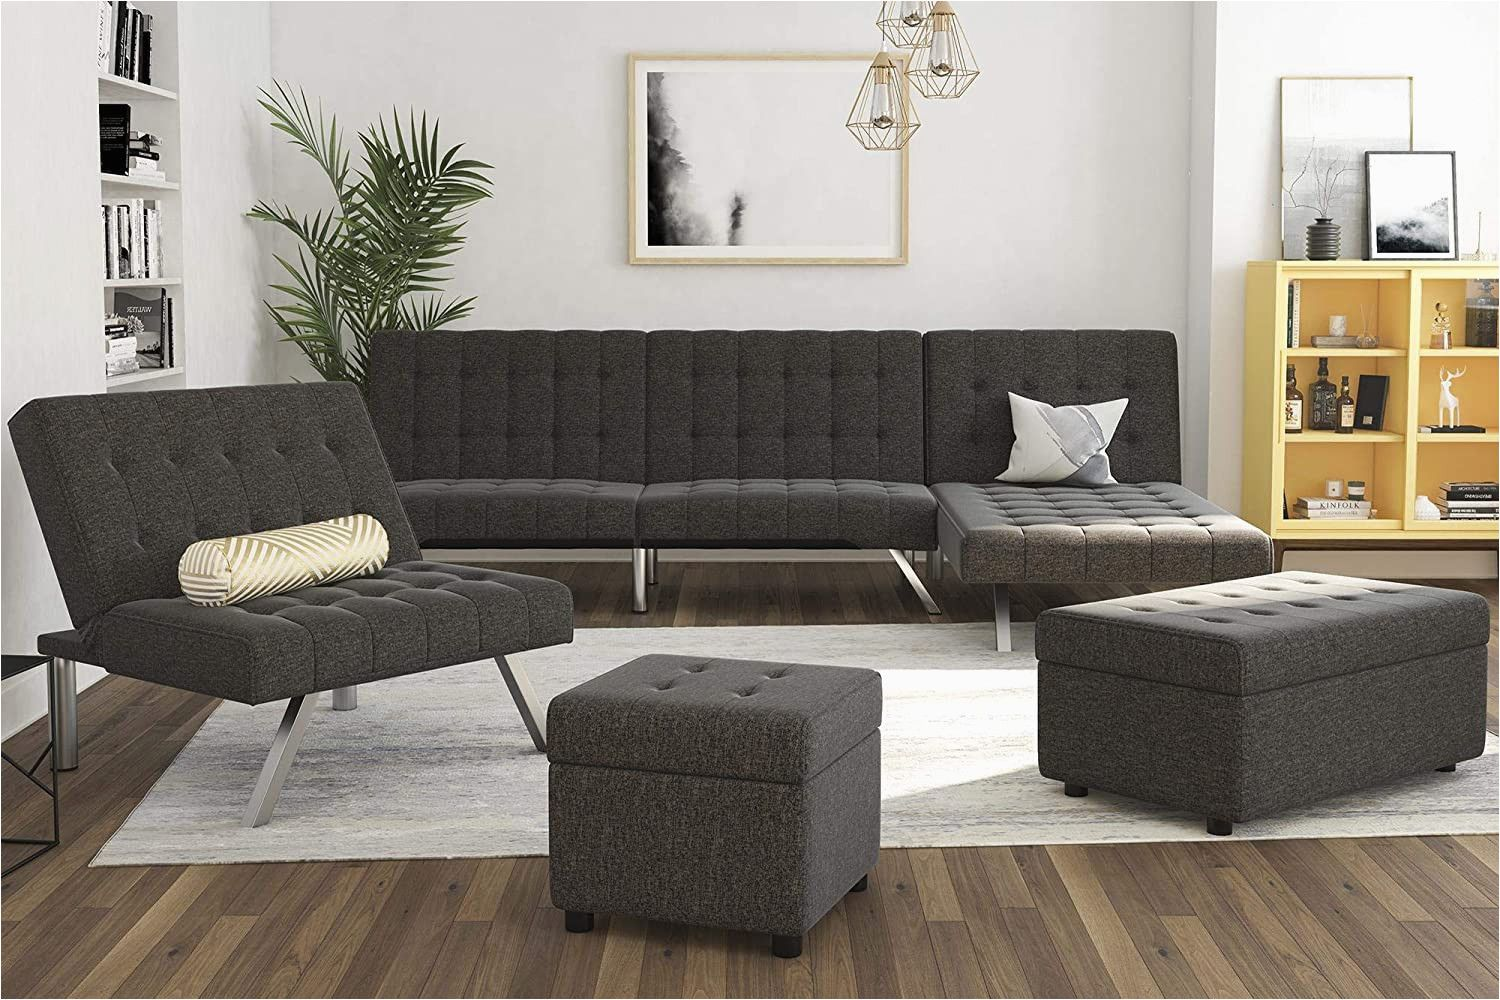 Comfortable sofa Beds Consumer Reports in 2020